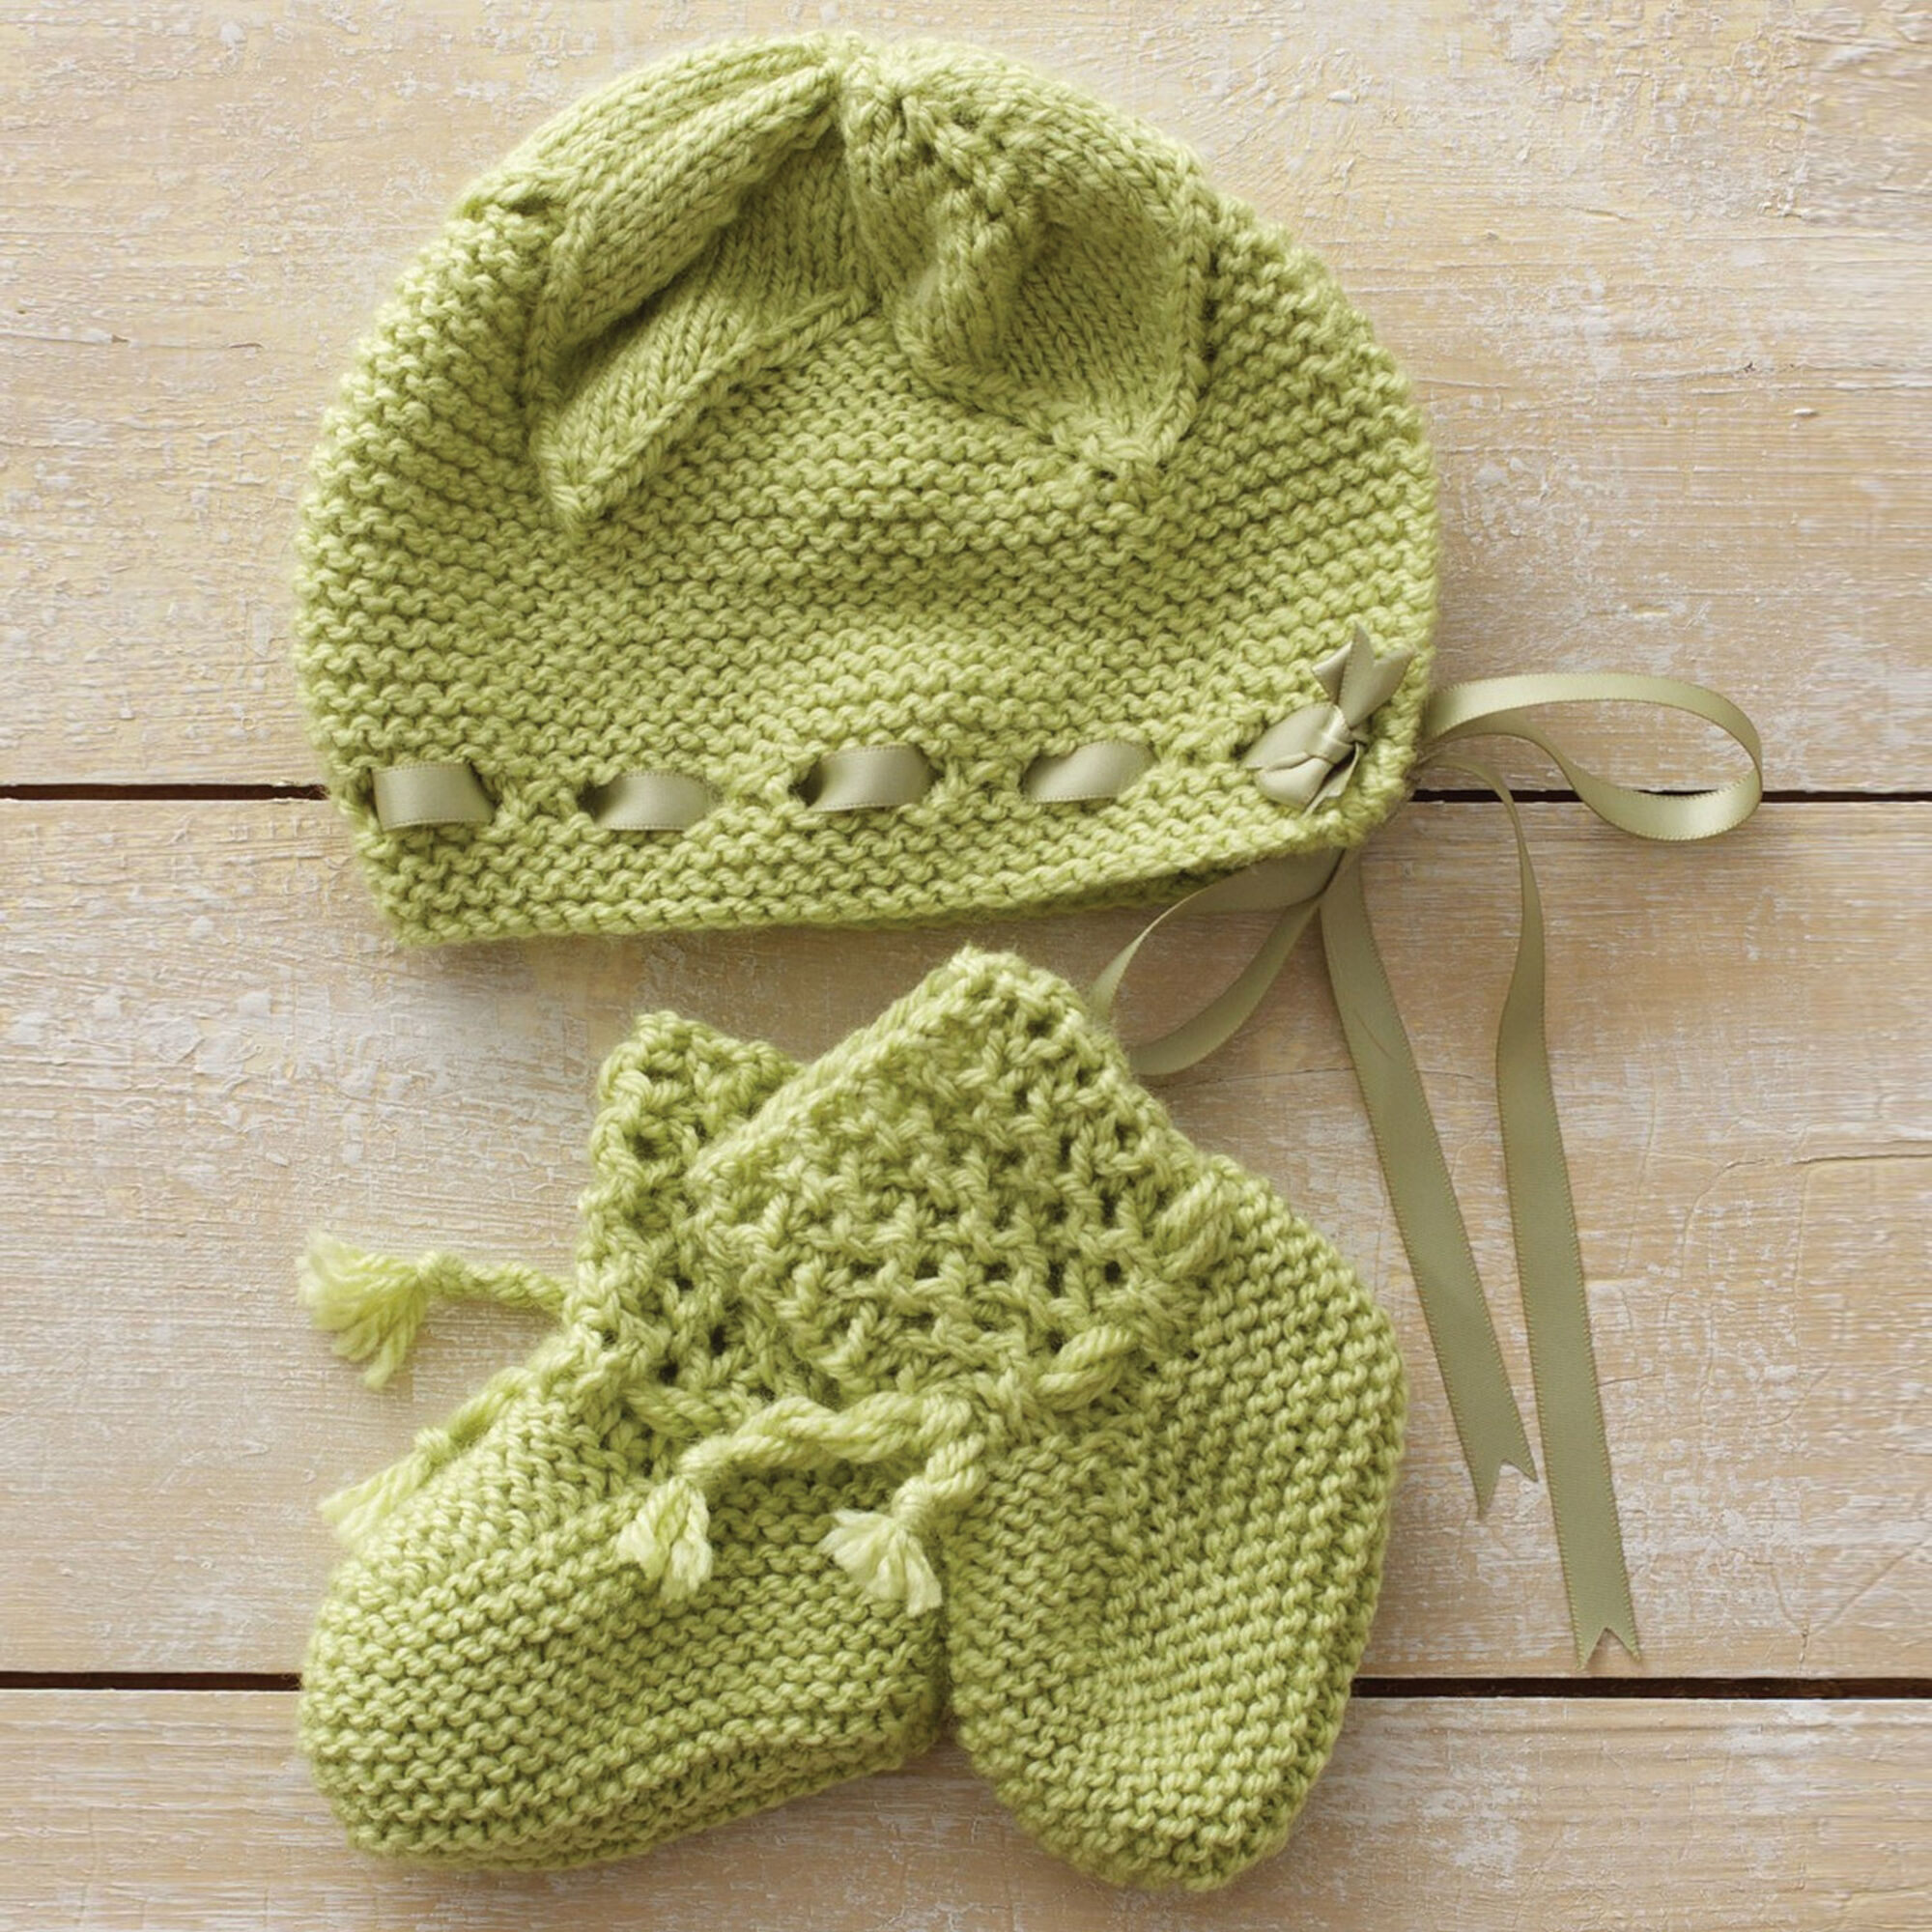 Bernat Leaf and Lace Set, Jacket - 3 mos | Yarnspirations